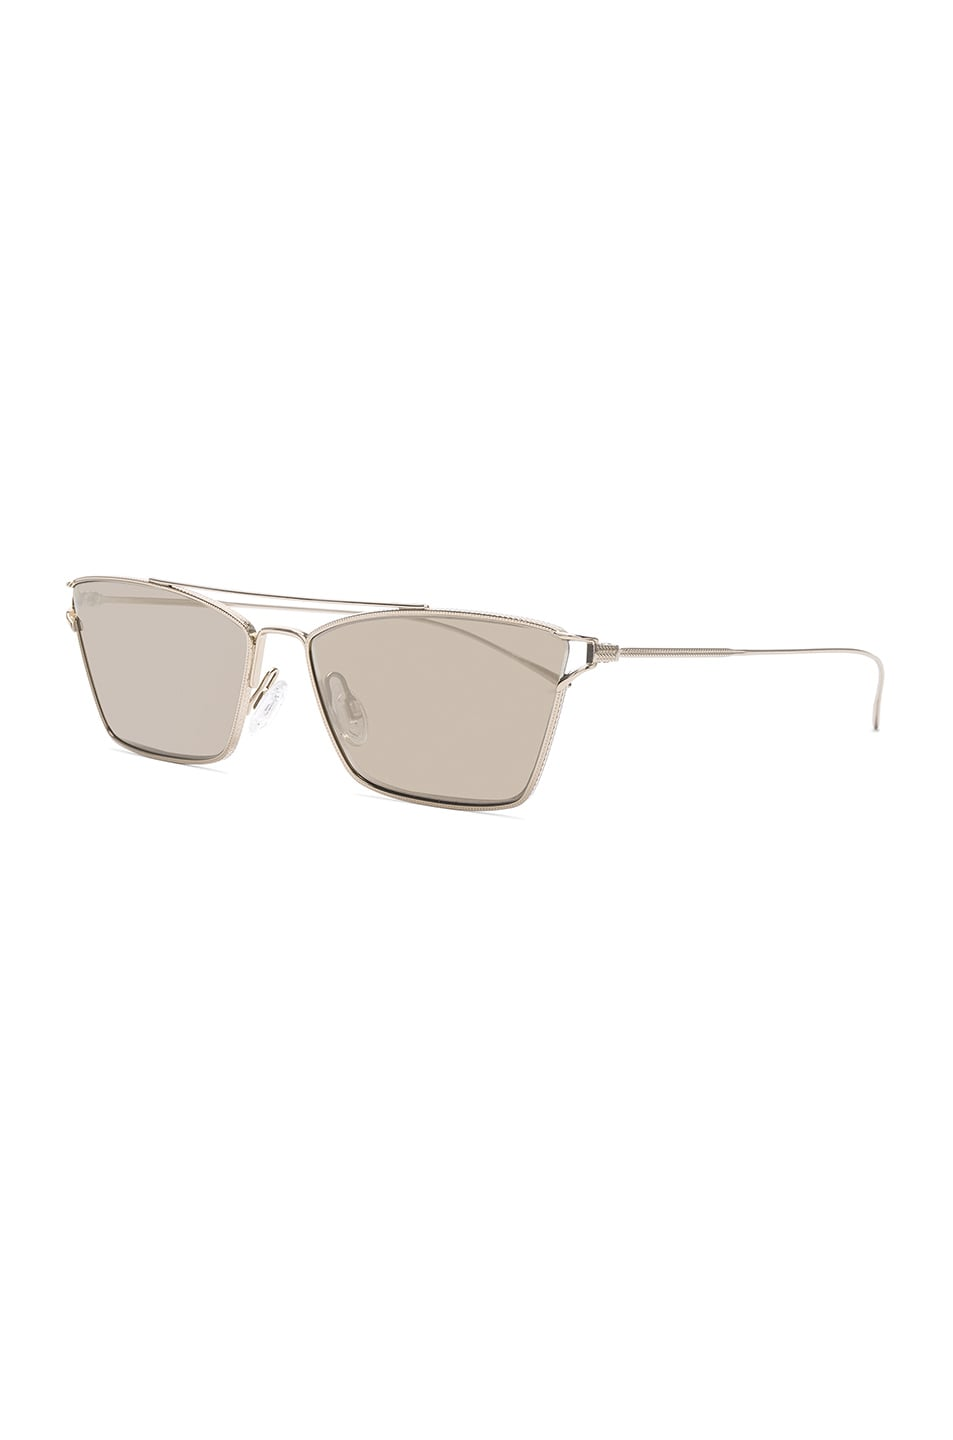 Image 2 of Oliver Peoples Evey Sunglasses in Gold & Taupe Flash Mirror